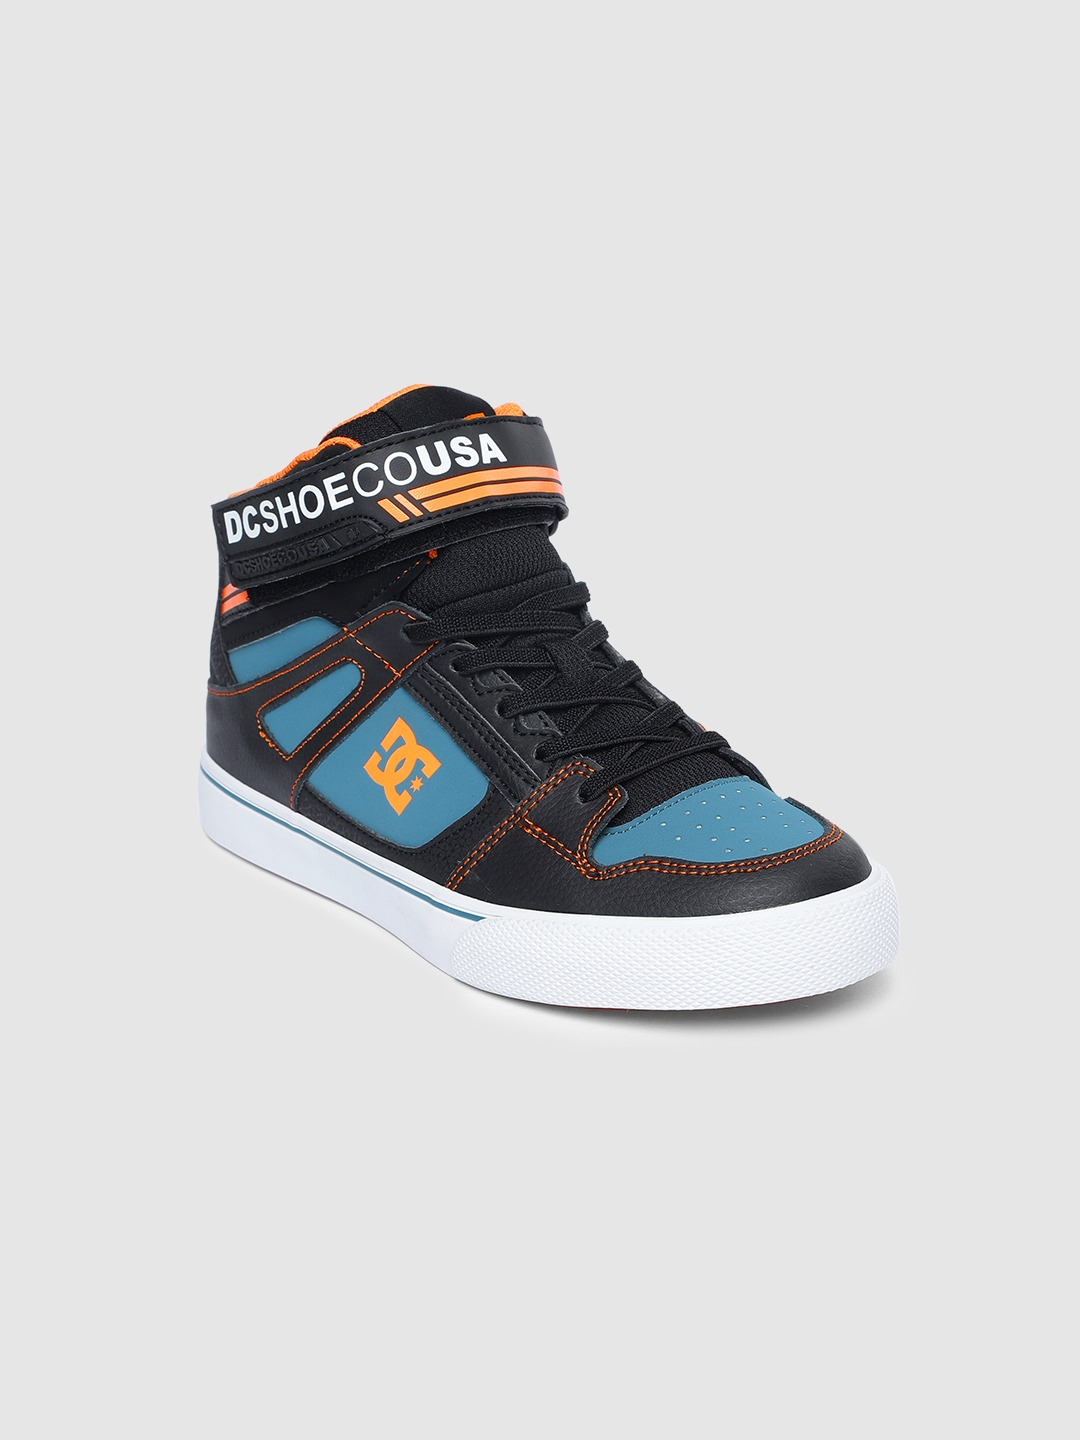 Black & Teal Blue Colourblocked Leather Mid-Top Sneakers